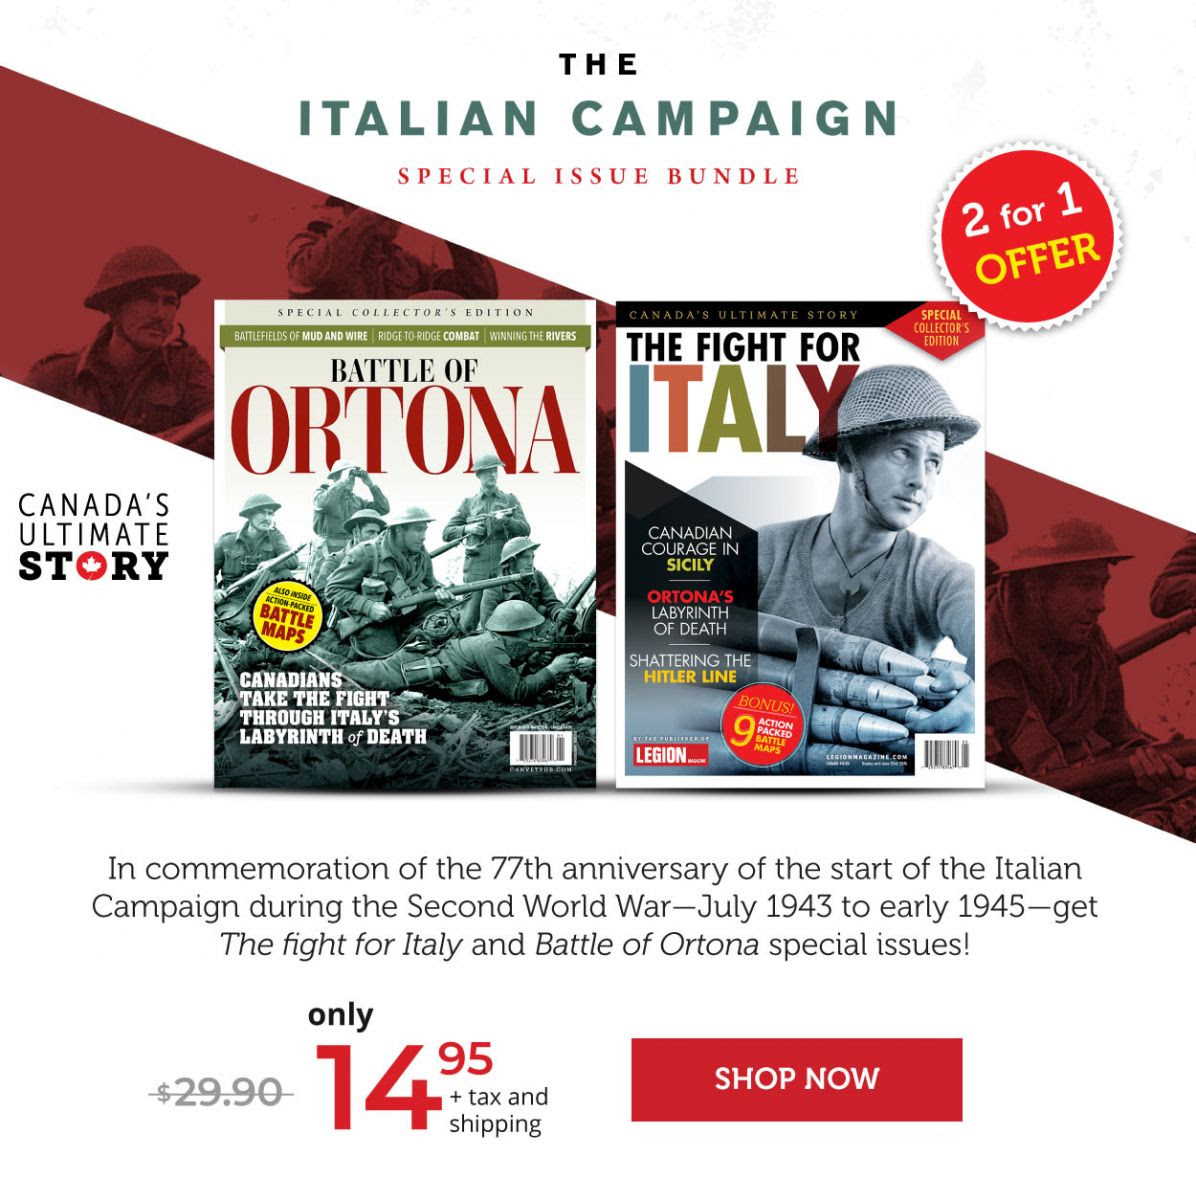 The Italian Campaign Special Issue Bundle